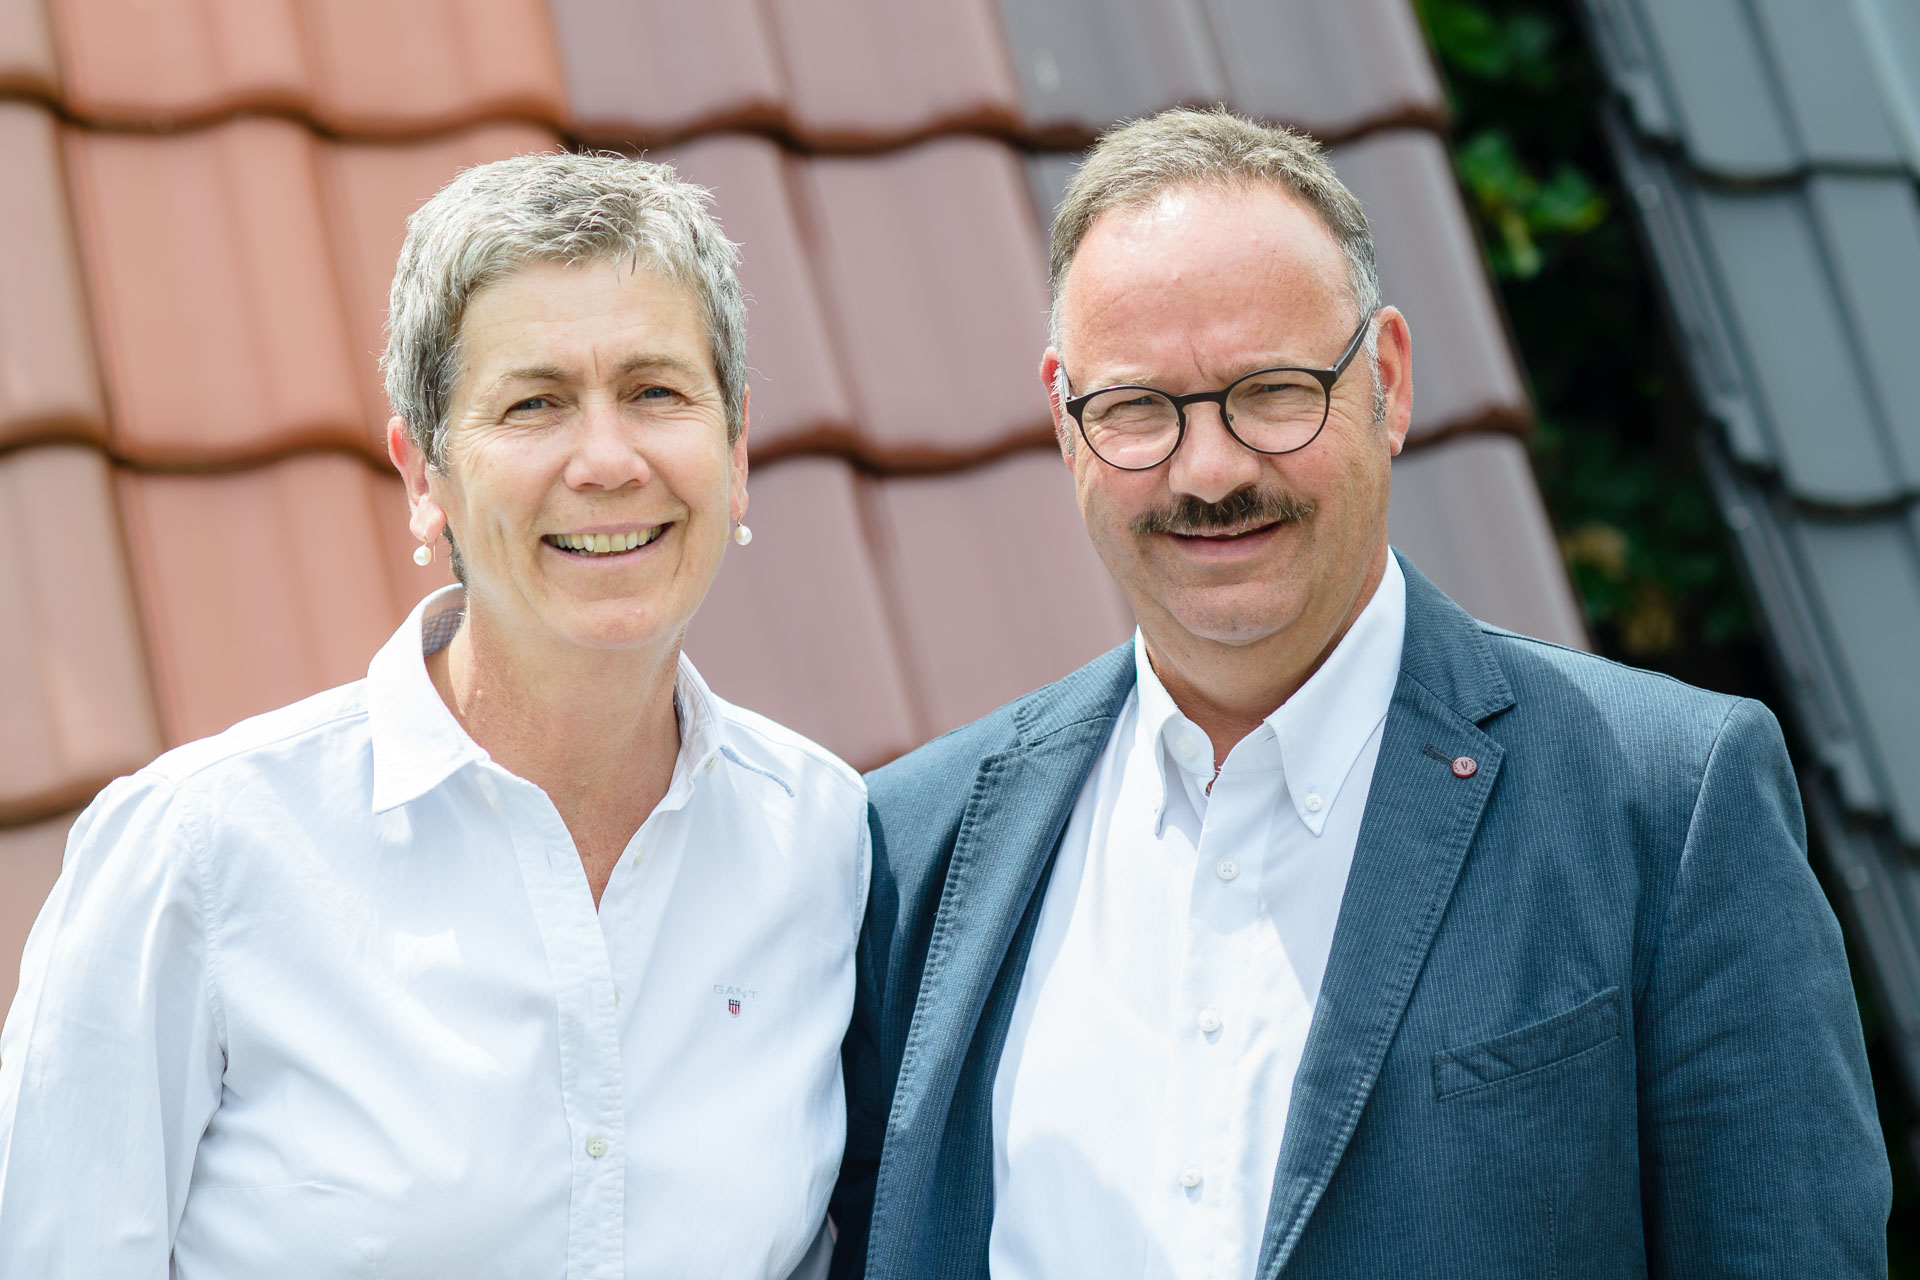 Angelika und Christoph Possemeyer